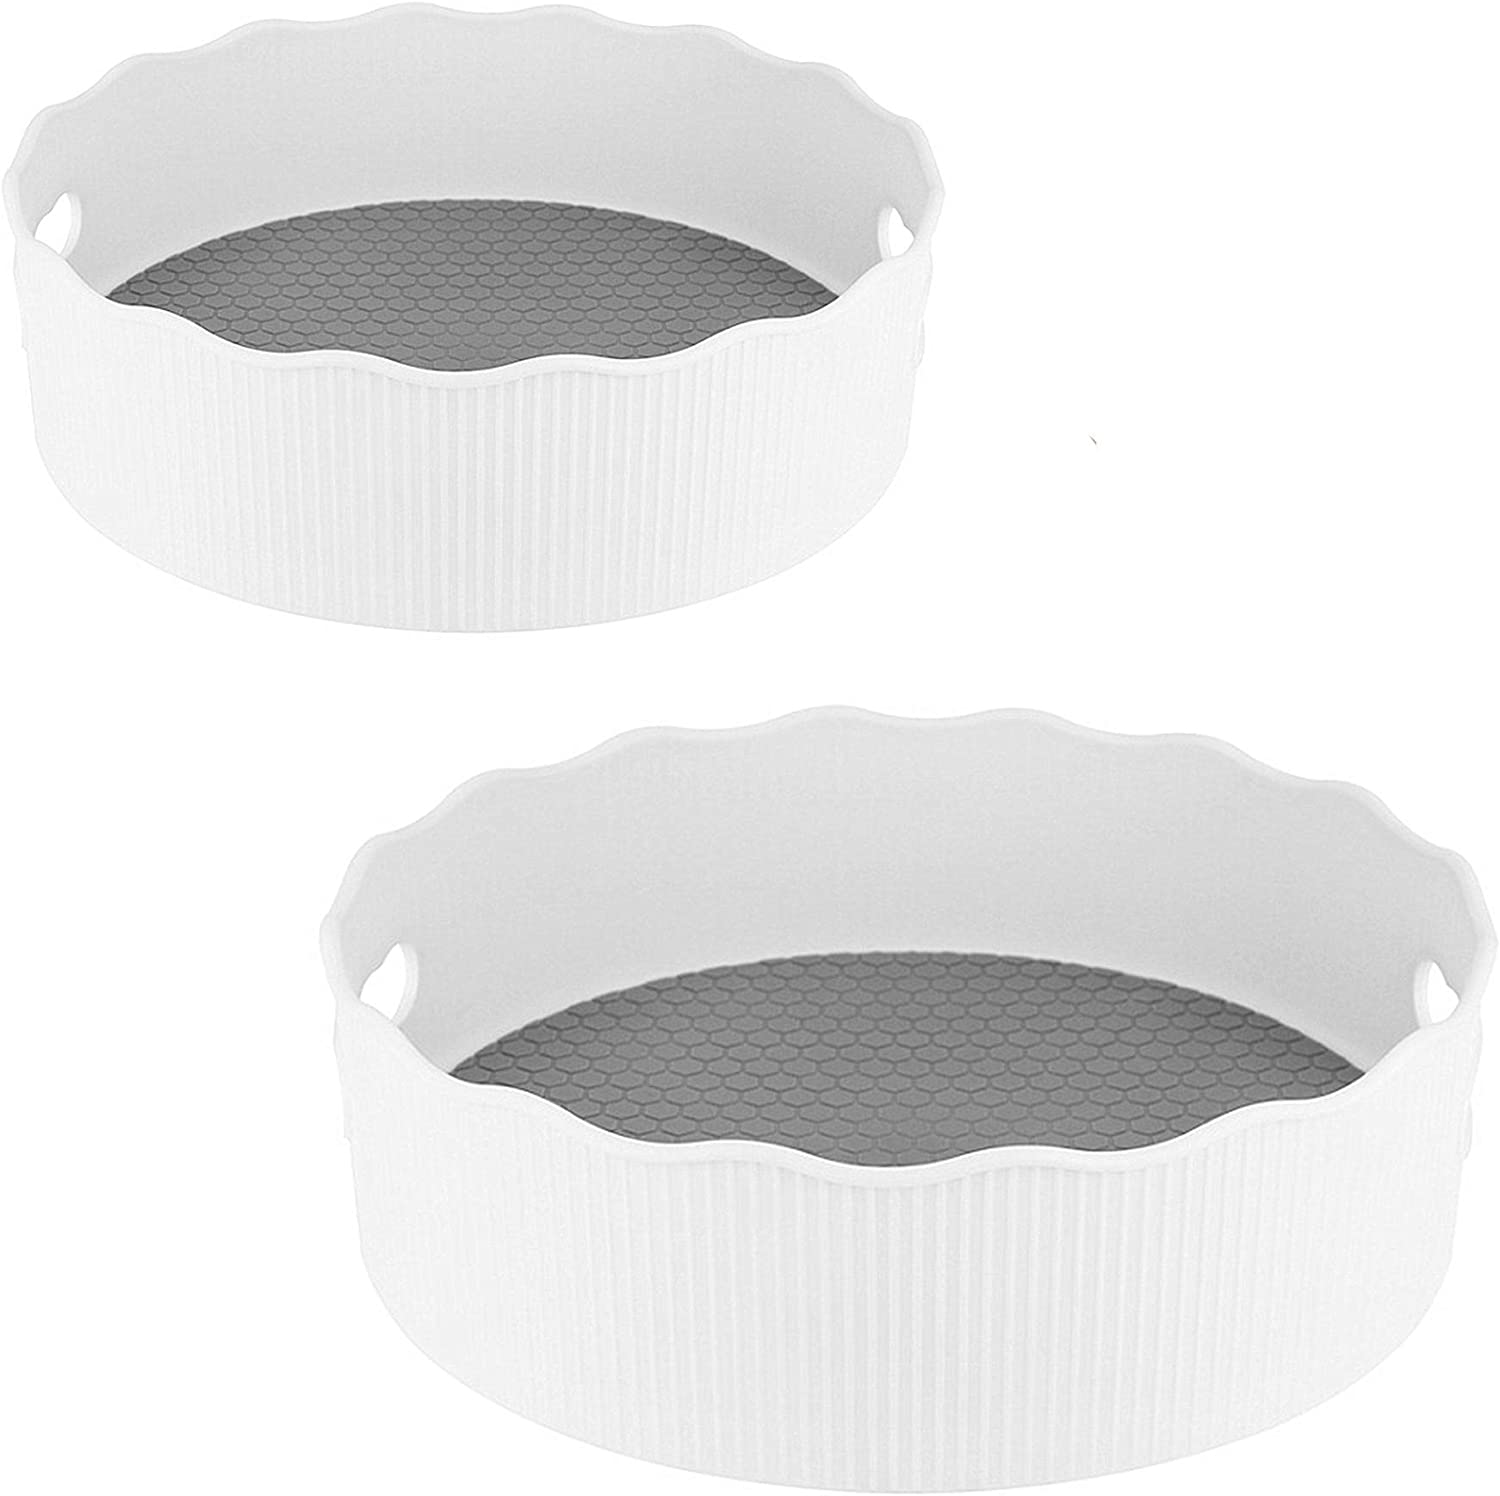 2 Pack Deep Spinning Lazy Susan Anti-slip, 1 Large & 1 Small Plastic Turntable Spice Holder Food Condiment Storage Bin with Handles for Kitchen, Bathroom, Cabinets, Fridge, Countertops (white)